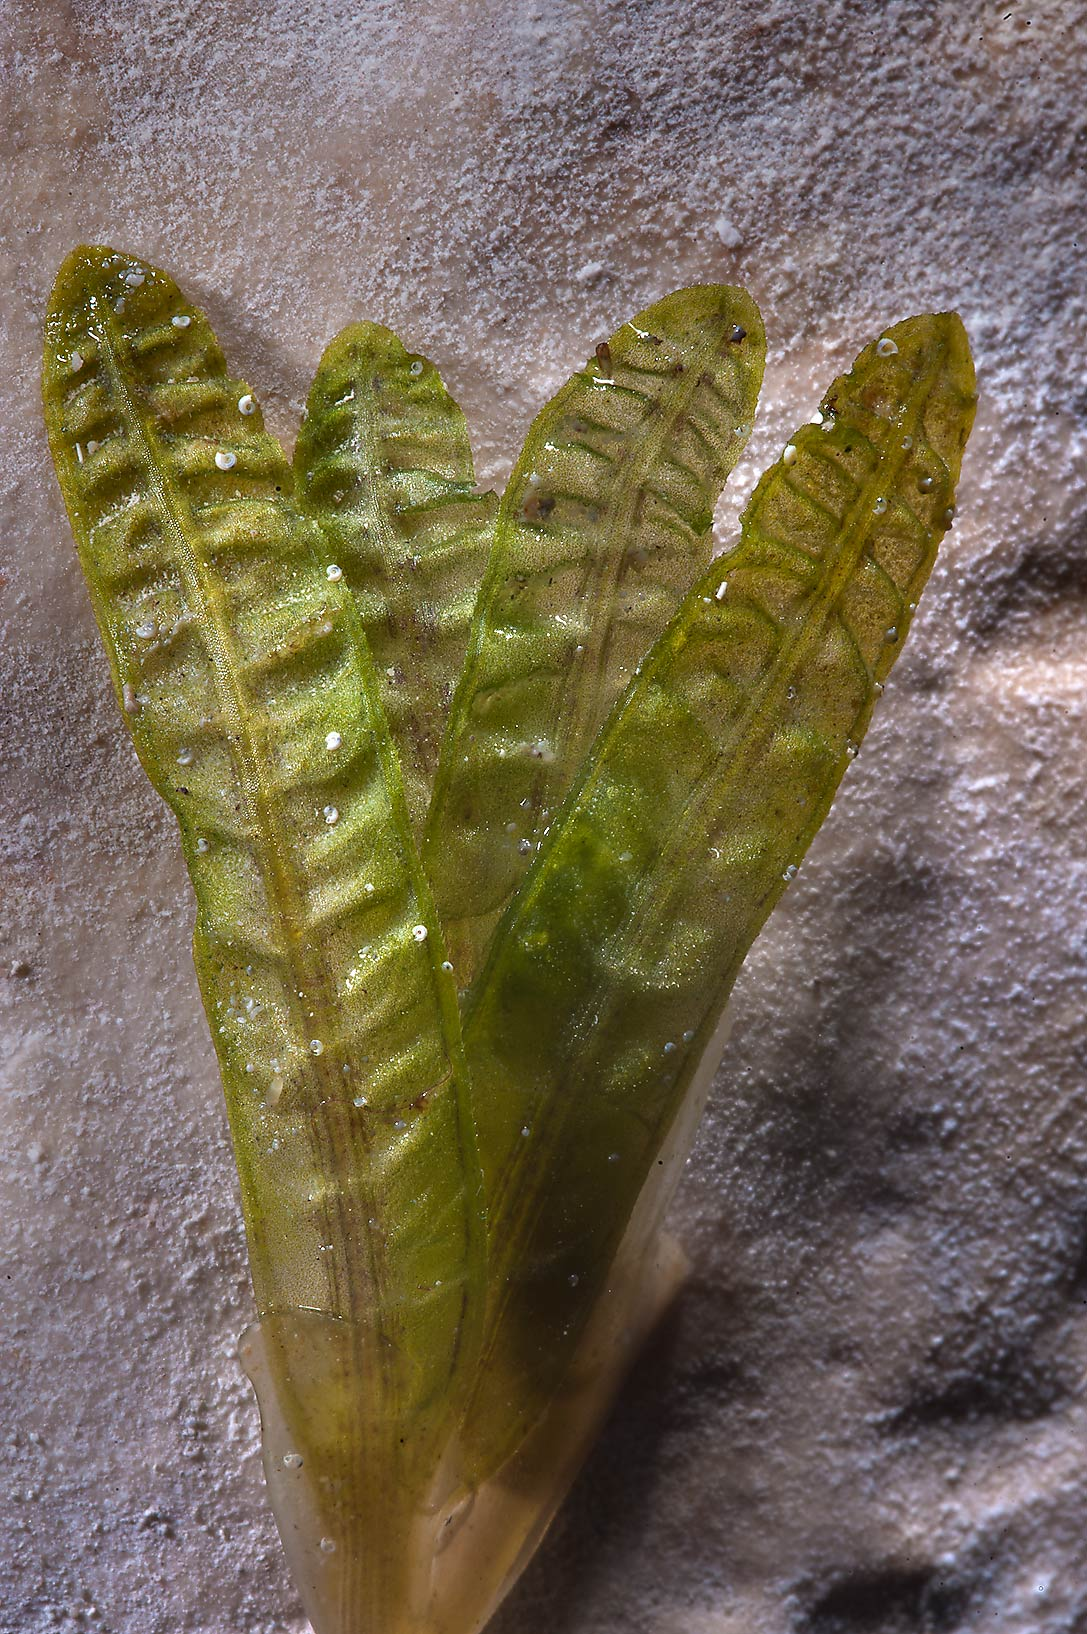 Bunch of leaves of seagrass (Halophila stipulacea...of Ras Al Noof near Al Khor. Qatar